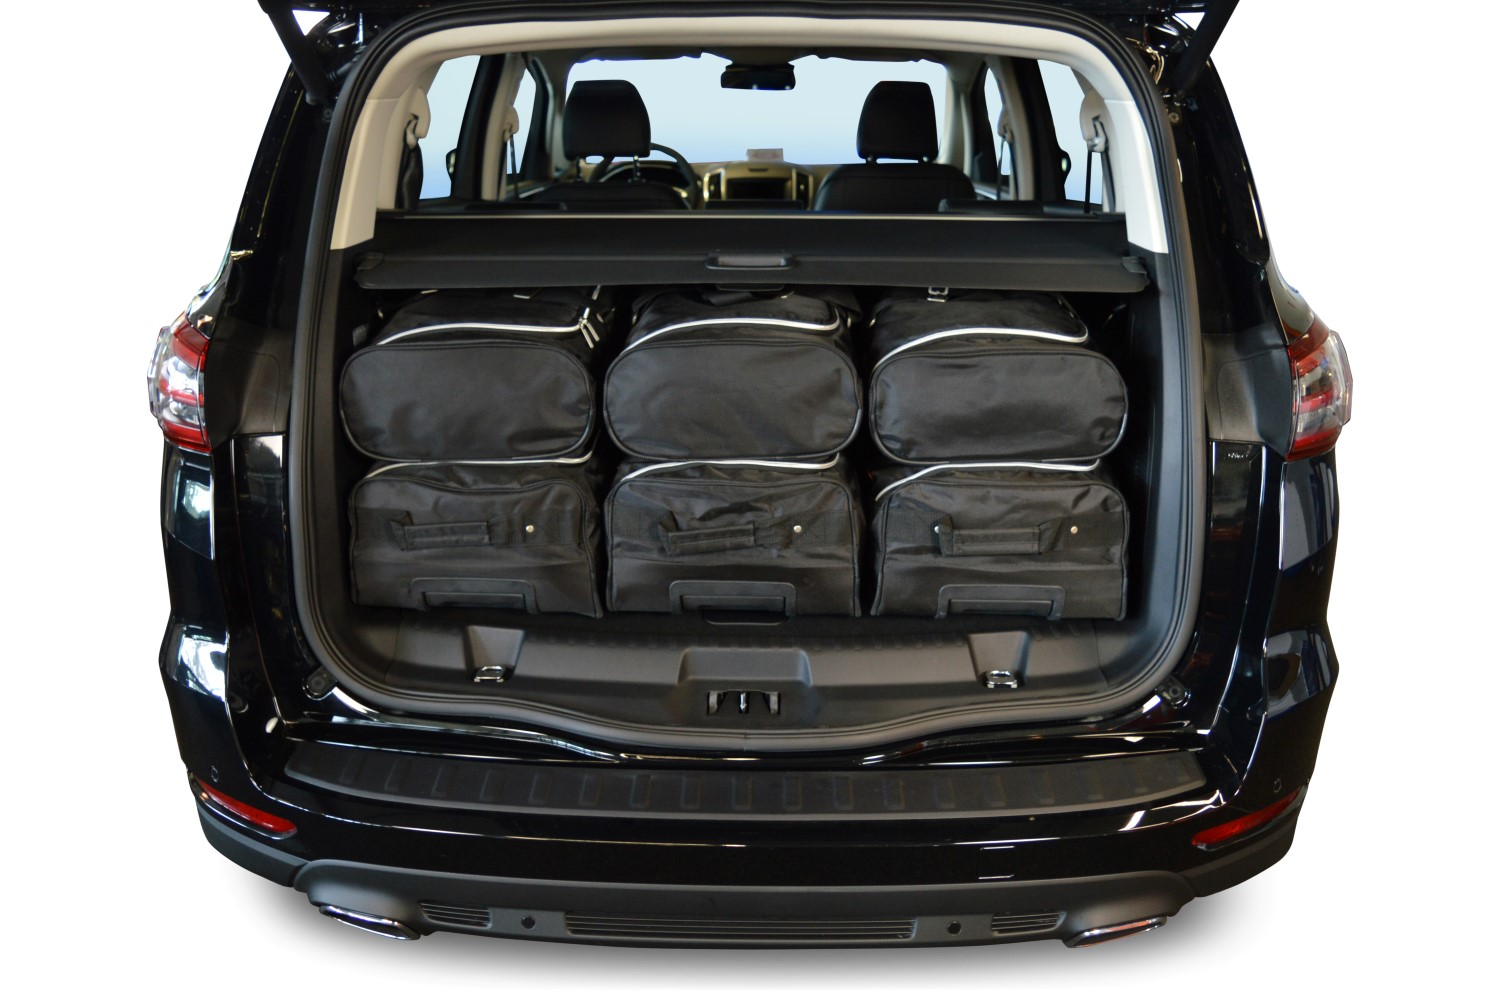 Ford S Max 7 Seater 2015 Car Bags Reistassen